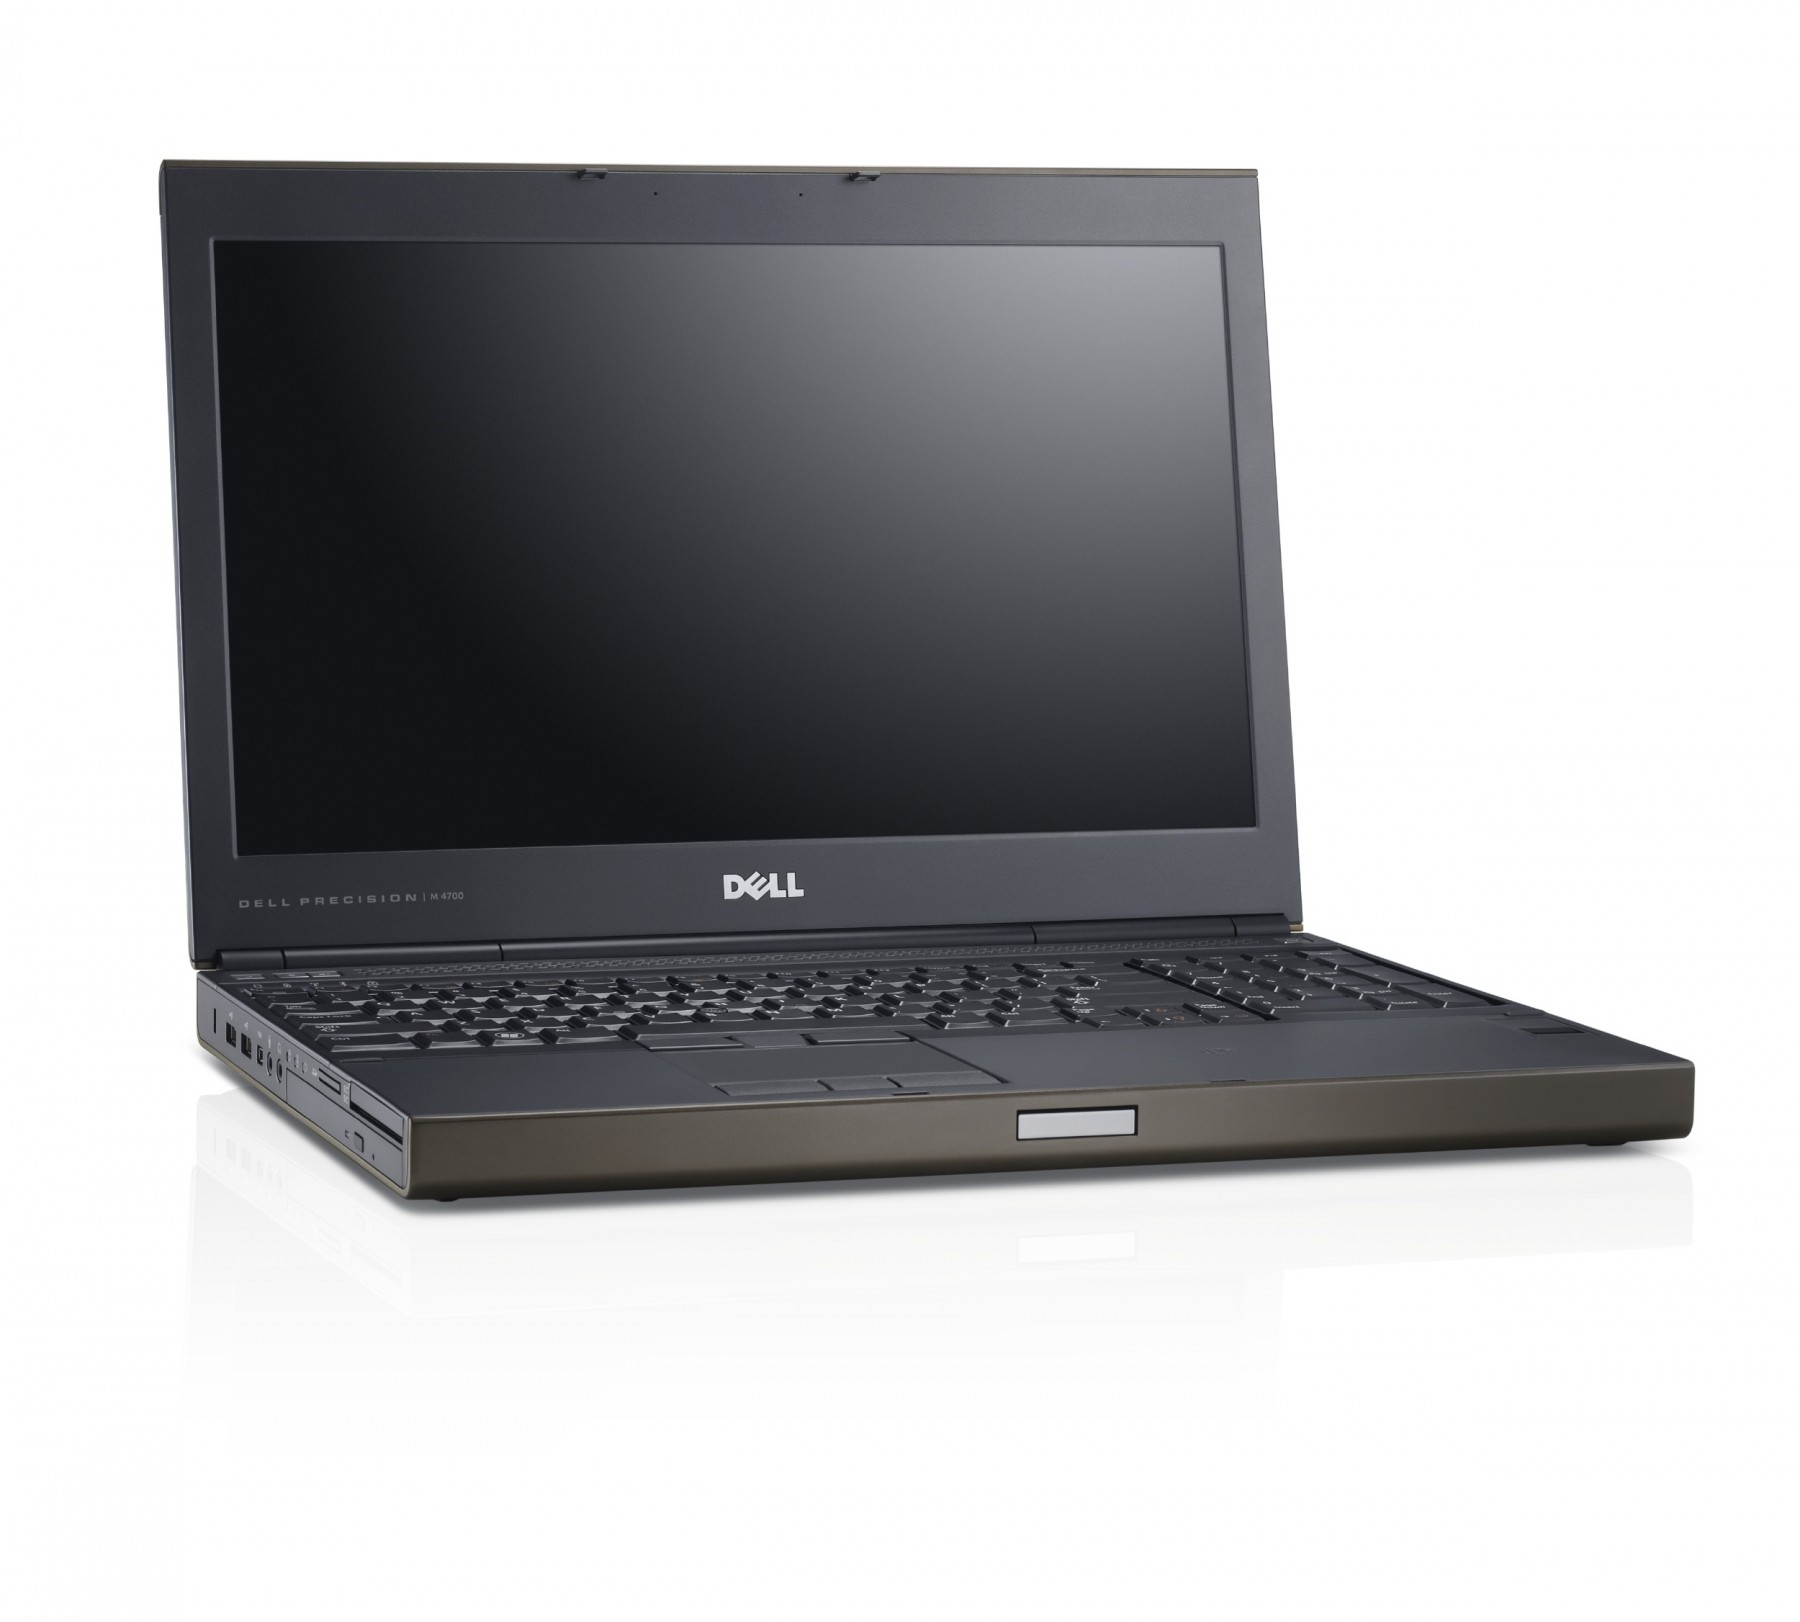 DEL-M4700-I7-Dell Precision M4700 Refurbished Mobile Workstation 750 GB HDD 8 GB RAM Core i7 15.6-inch Windows 10 Pro-image